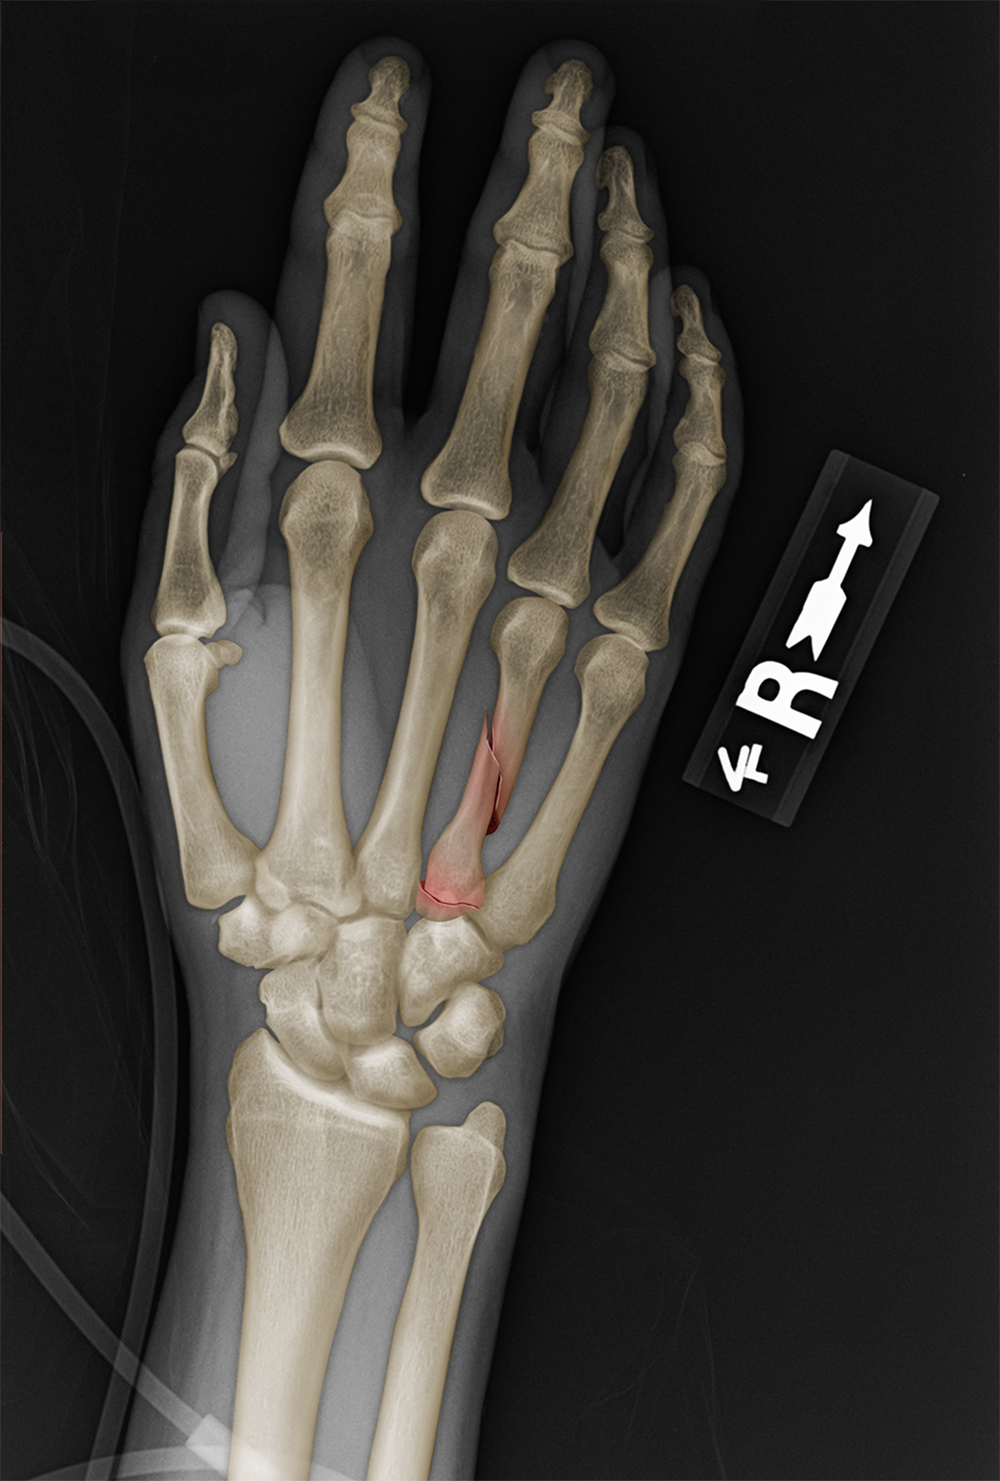 X-ray: metacarpal fracture